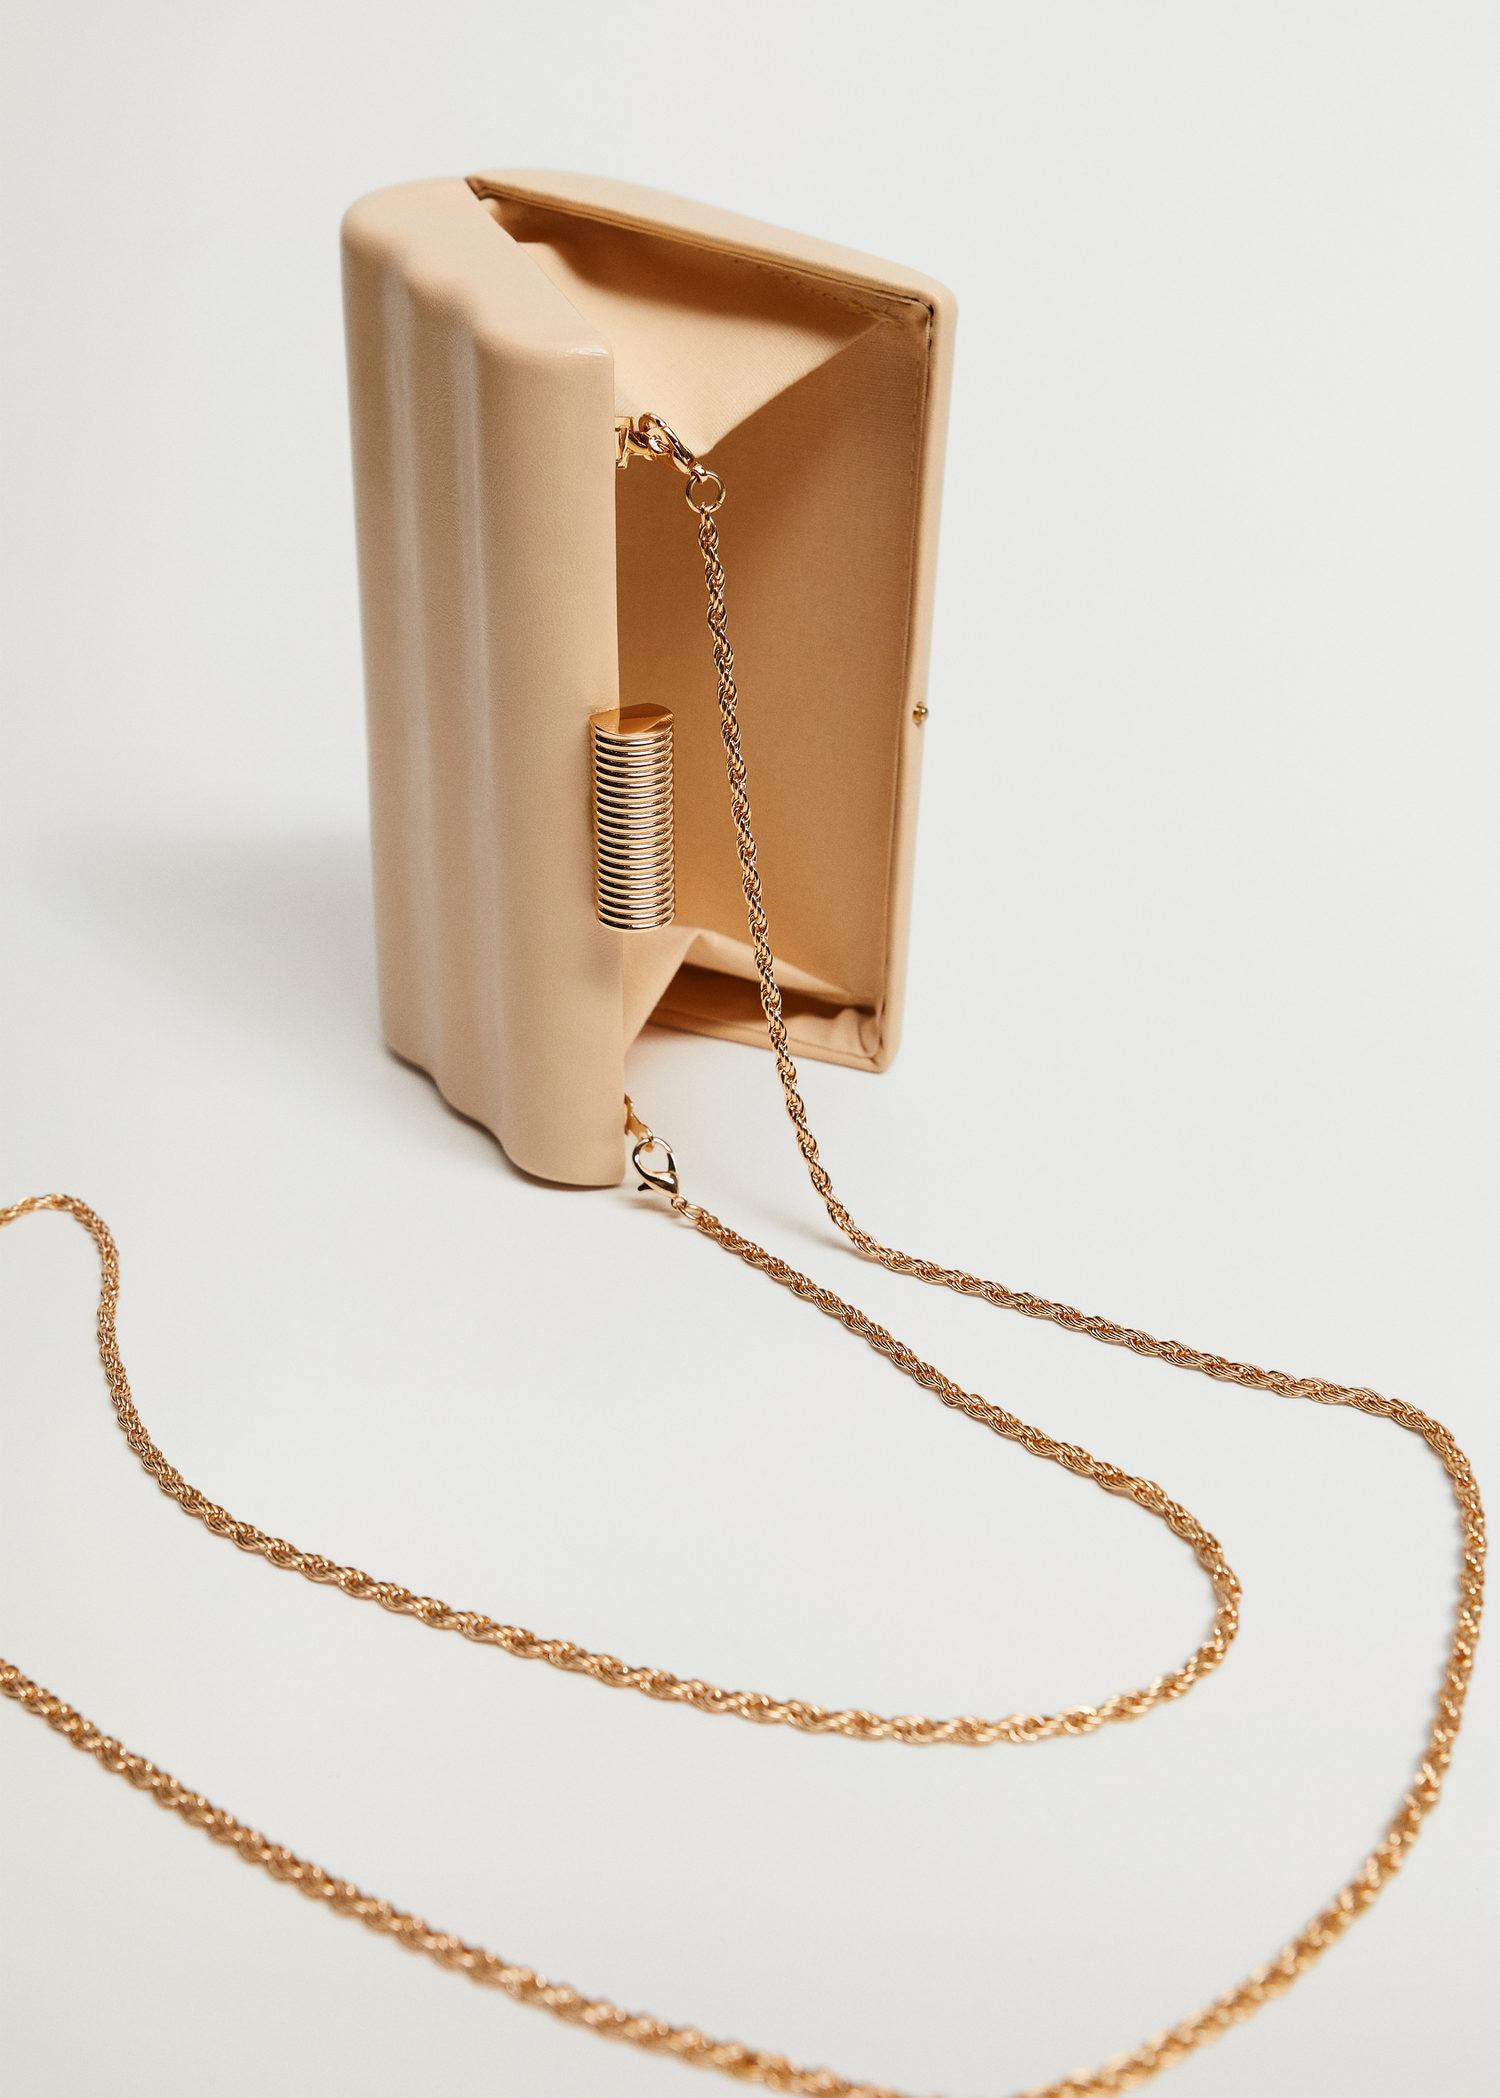 Box clutch with chain 2